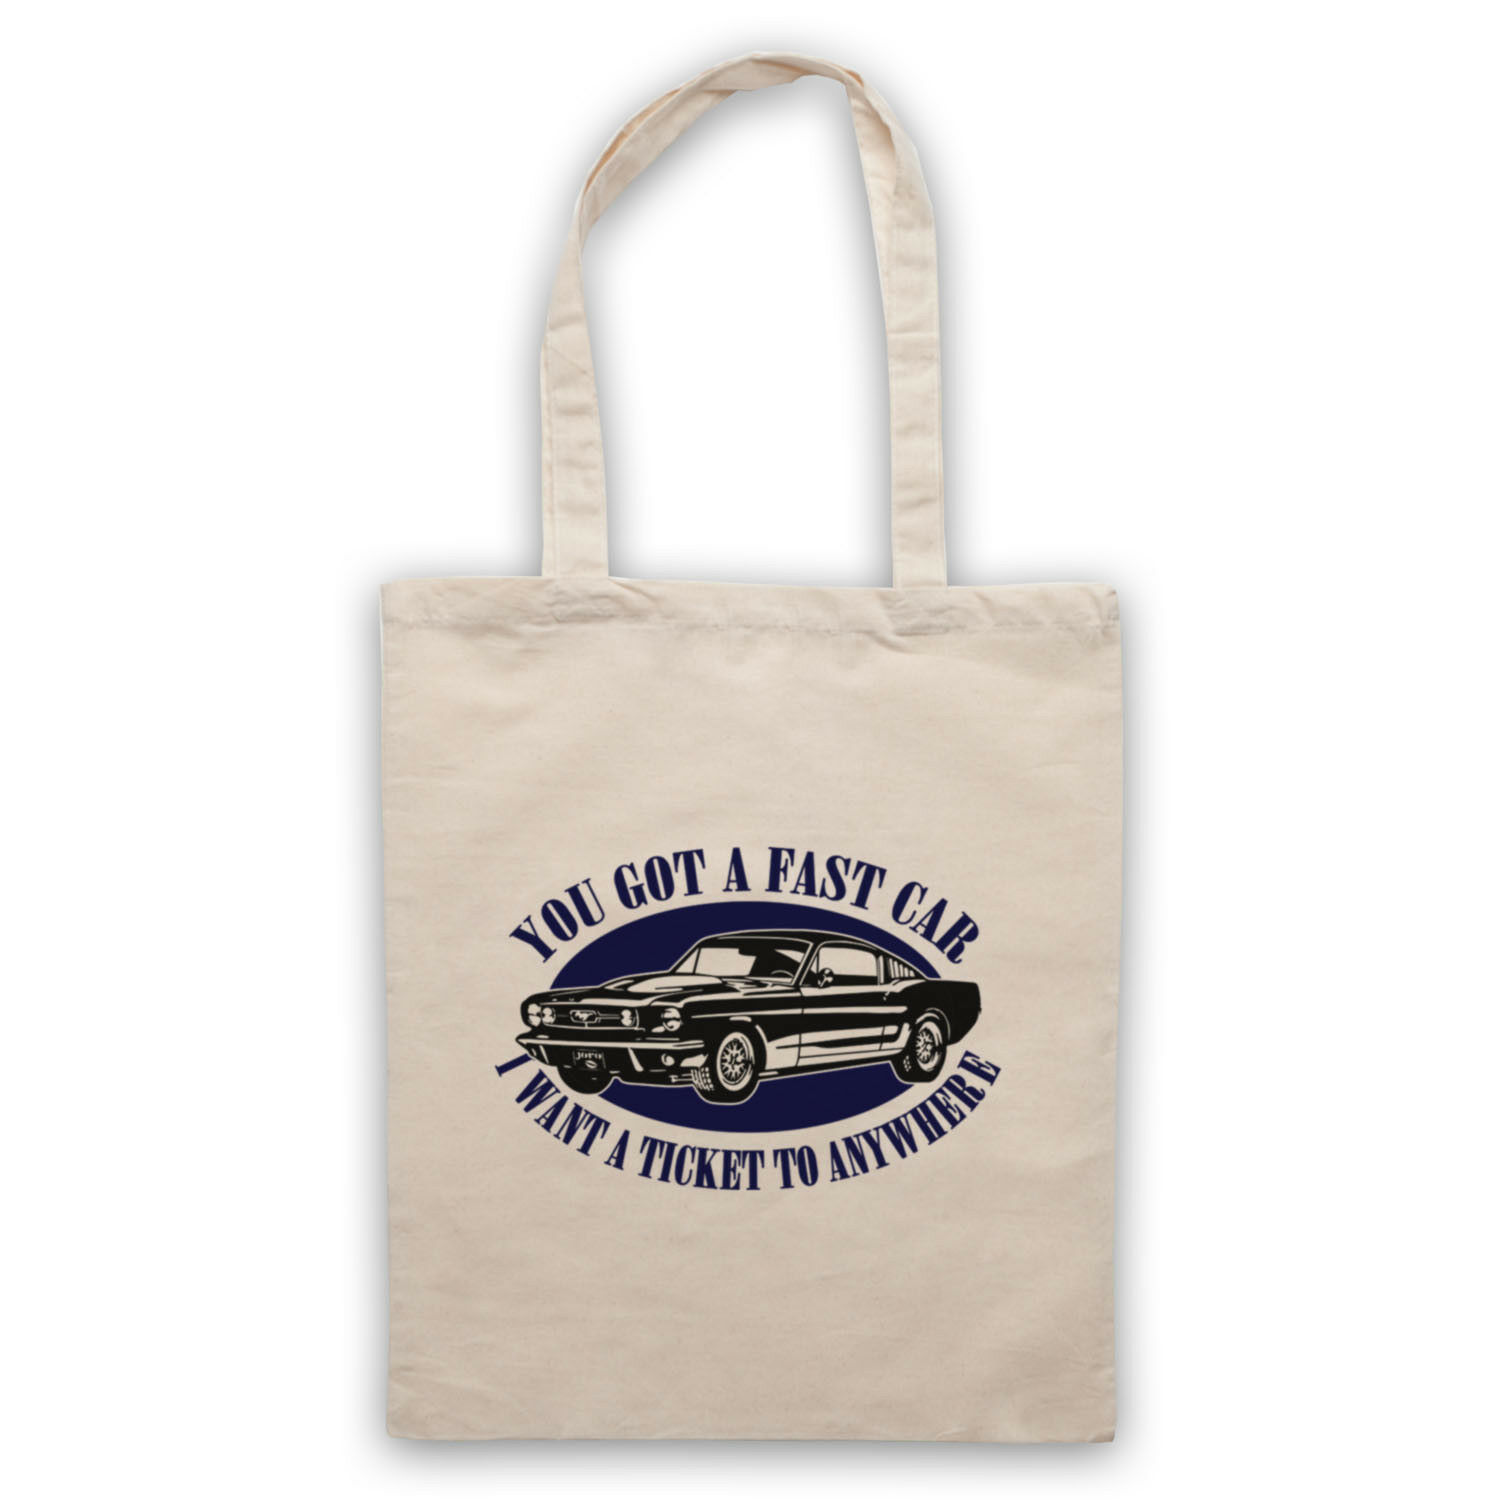 TRACY CHAPMAN FAST CAR UNOFFICIAL TICKET TO ANYWHERE TOTE BAG LIFE SHOPPER